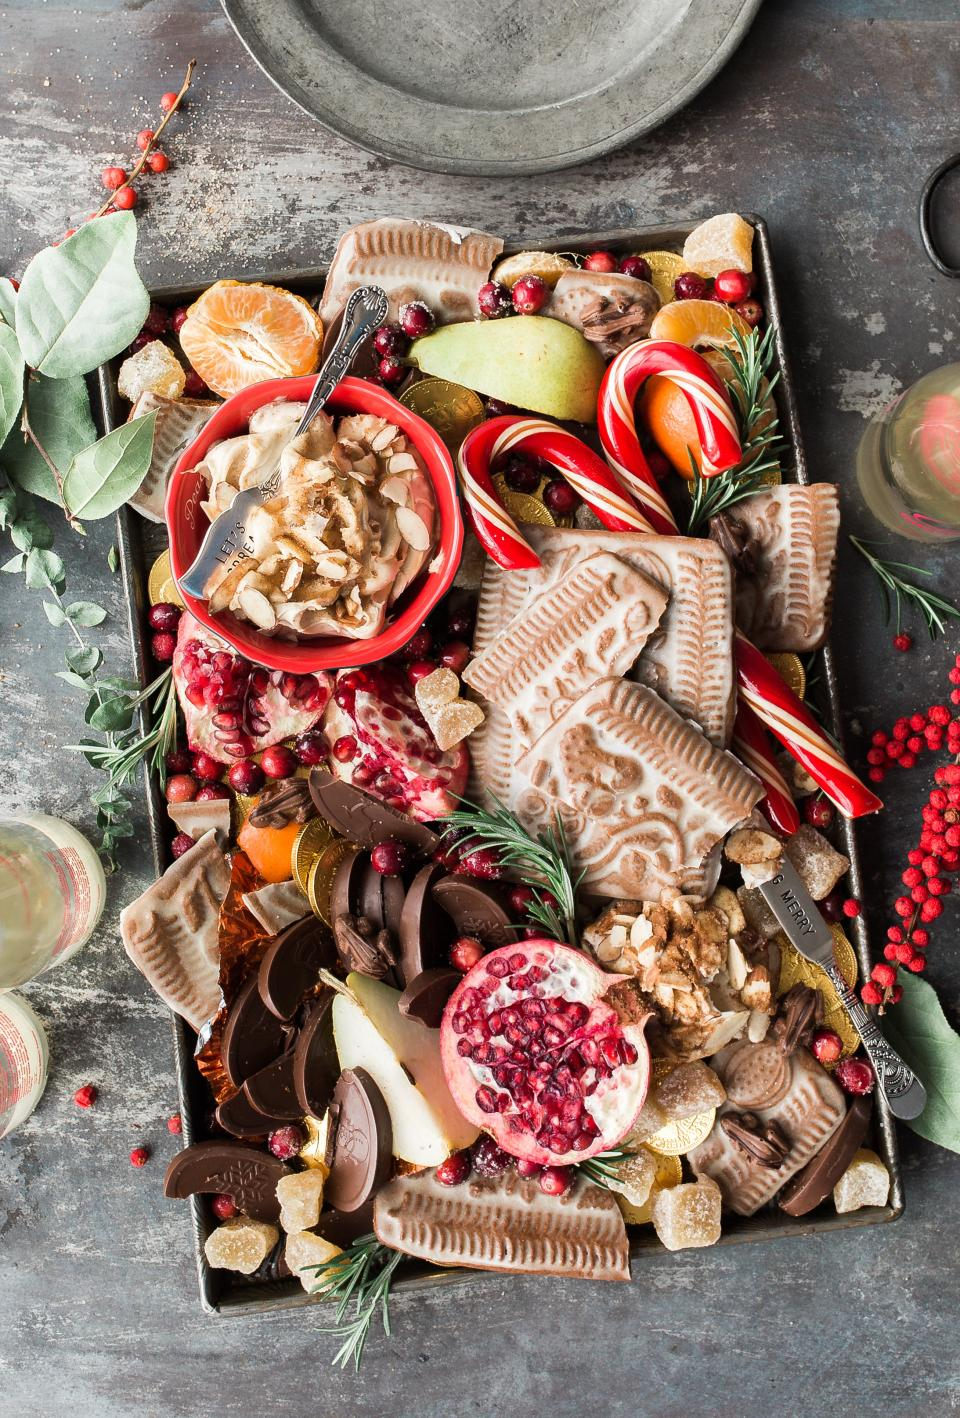 food fruits chocolates dessert sweets table candy green leaf